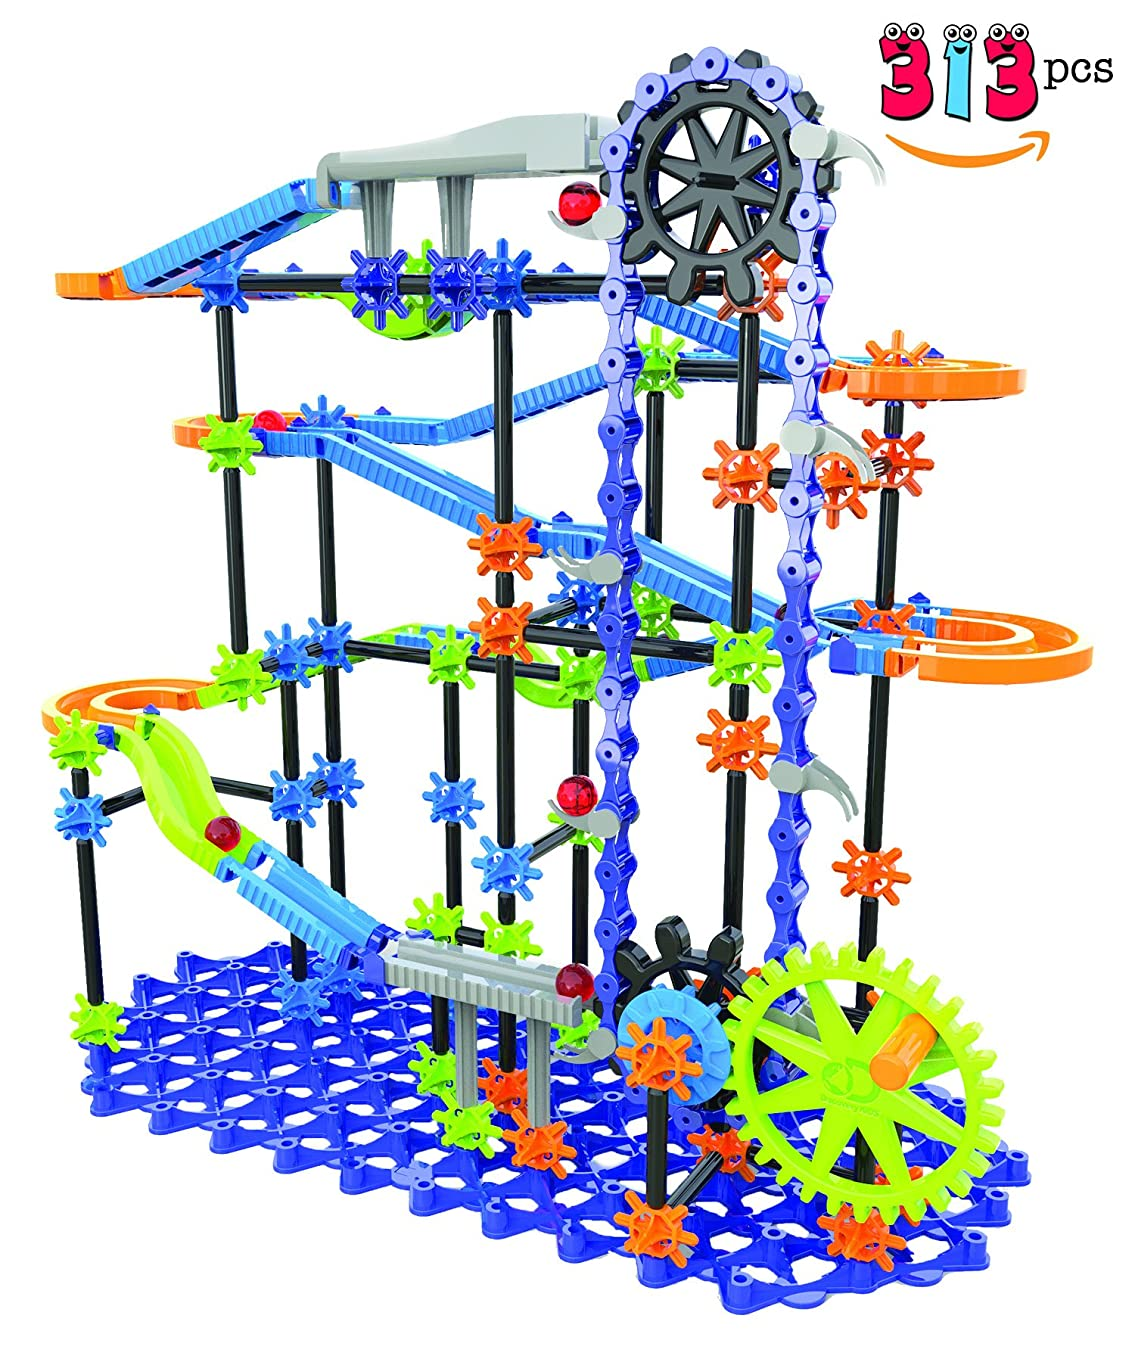 Discovery Kids Ultimate Marble Race Toy for Kids 313 Pieces | Stimulates Creativity, Imagination & Motor Skills, Sturdy Colorful Design, Endless Combinations for Science and Engineering